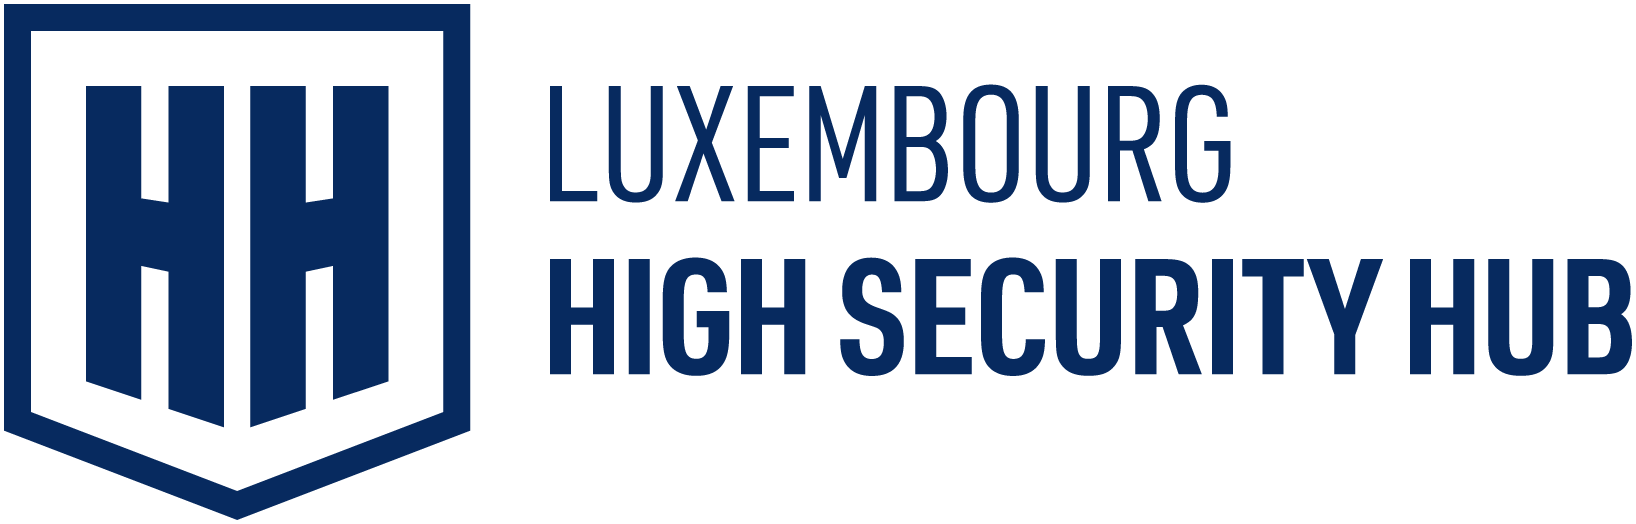 Luxembourg High Security Hub